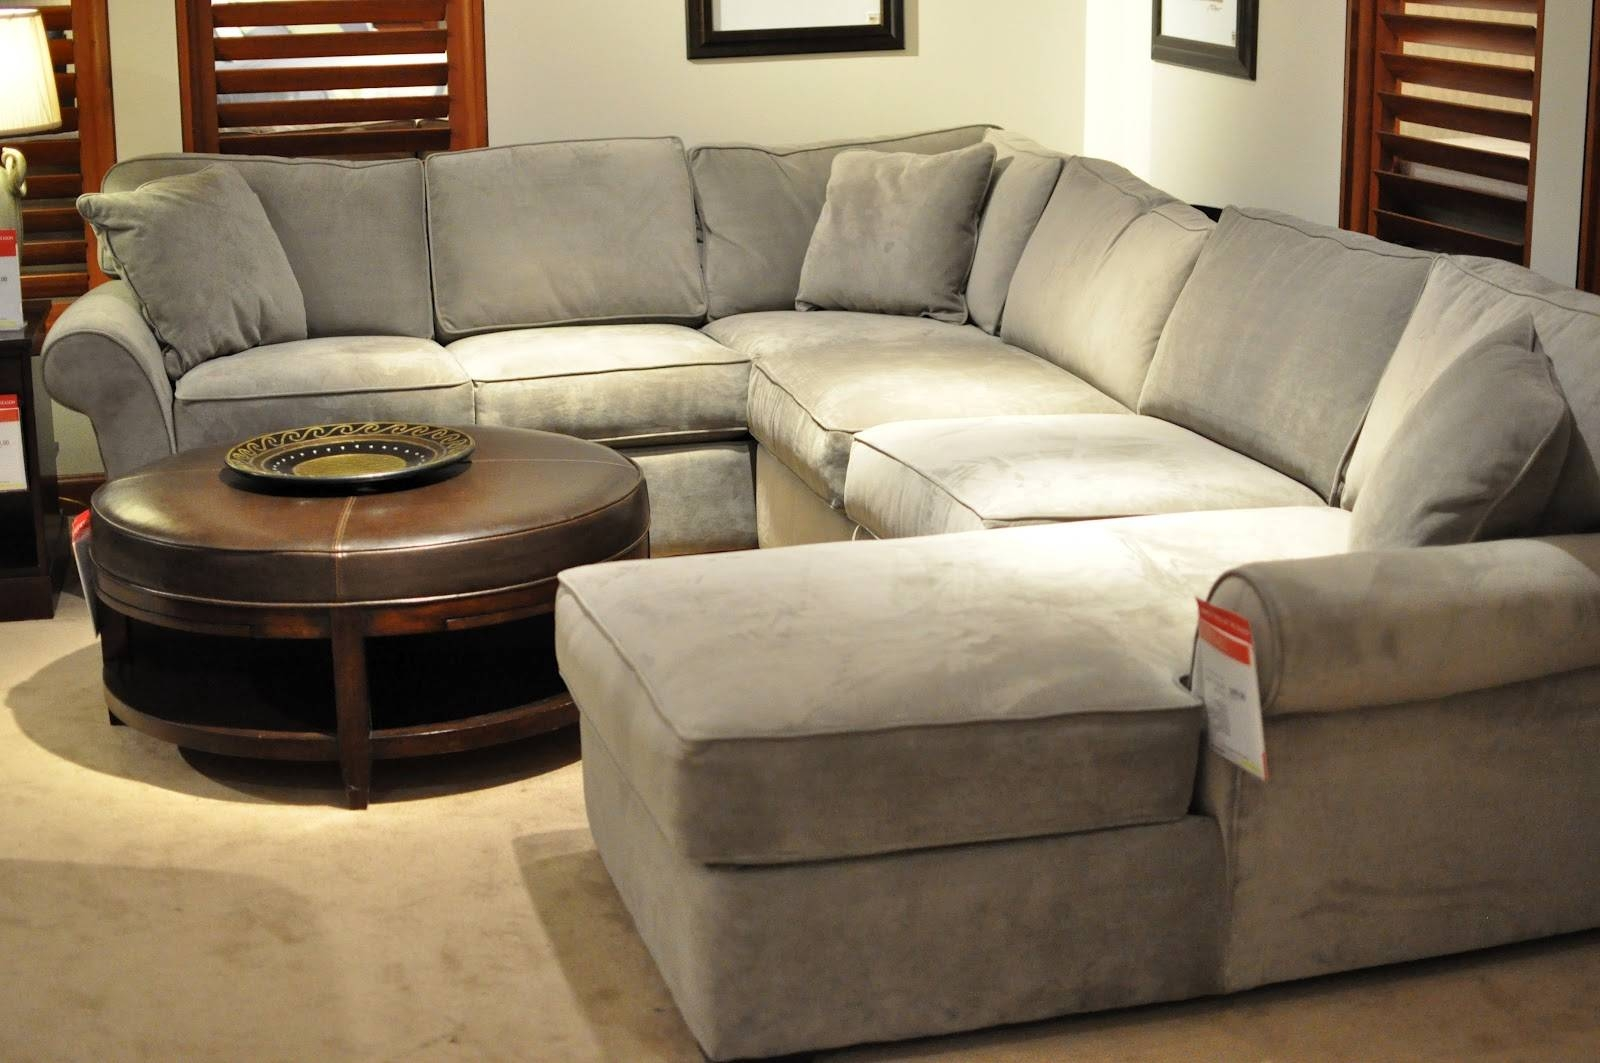 Not So Newlywed Mcgees: Shopping For A Sectional within West Elm Sectional Sofa (Image 25 of 30)